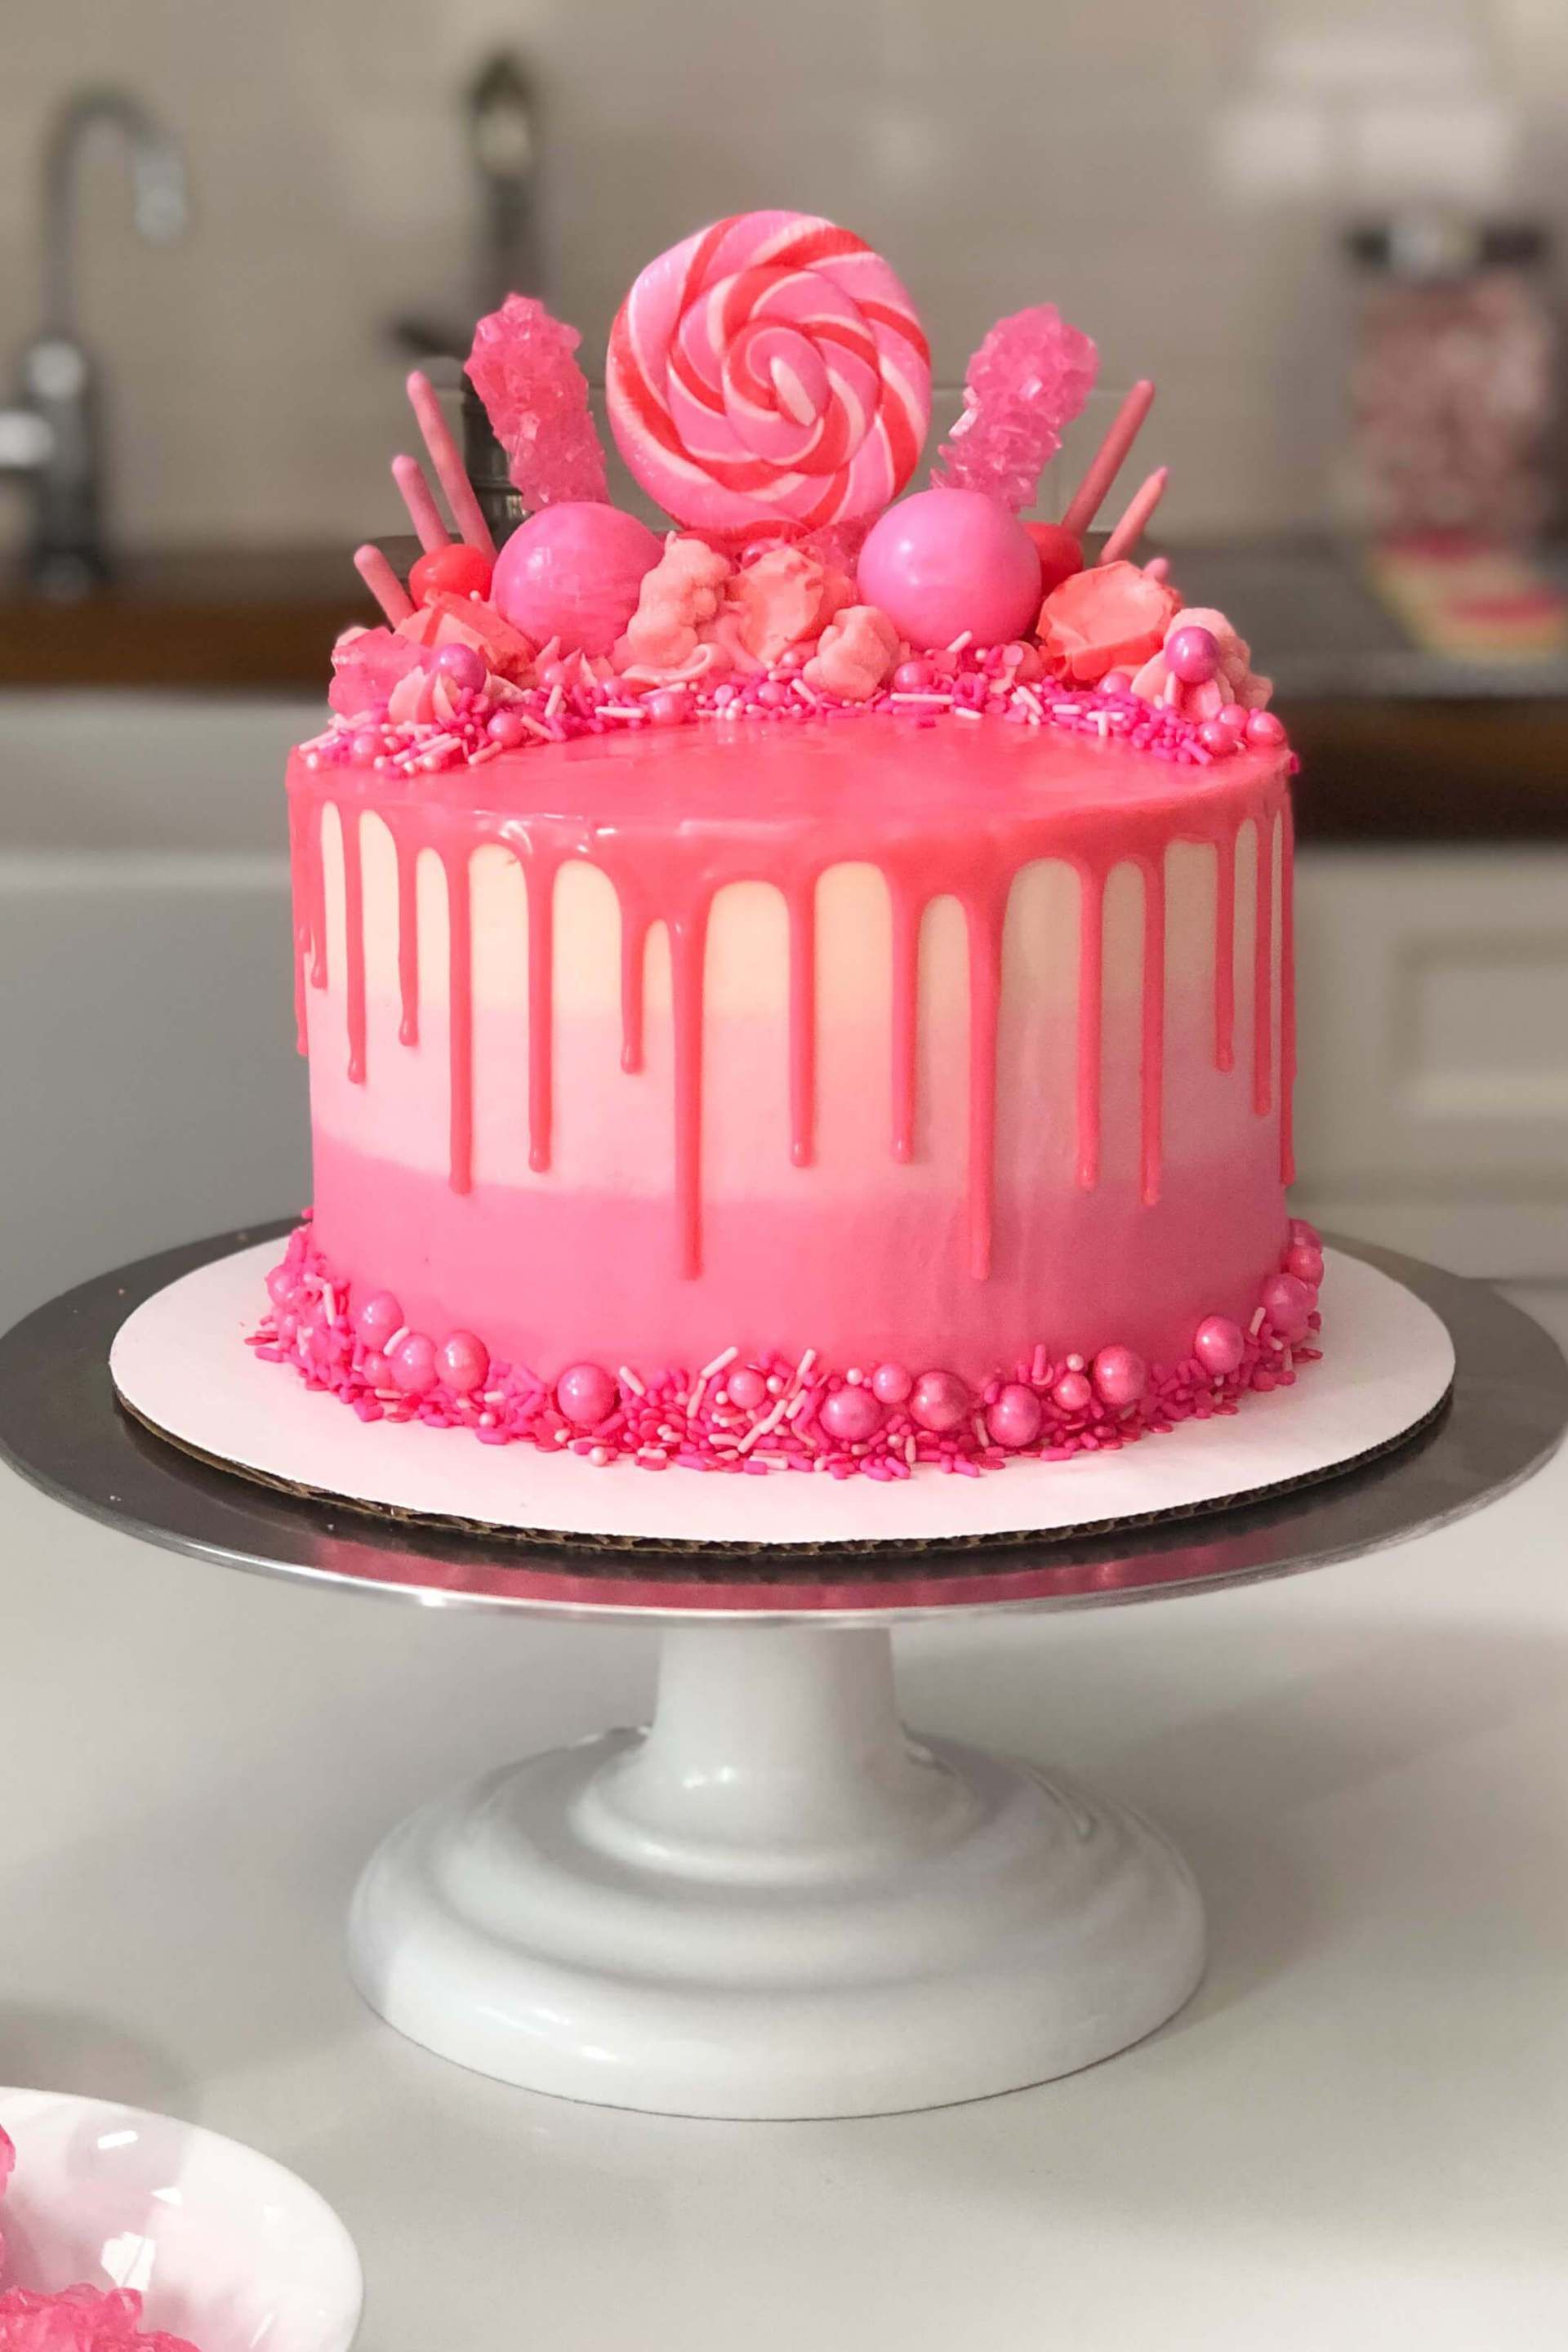 Pink Drip Cake Easy Recipe and Tutorial Chelsweets